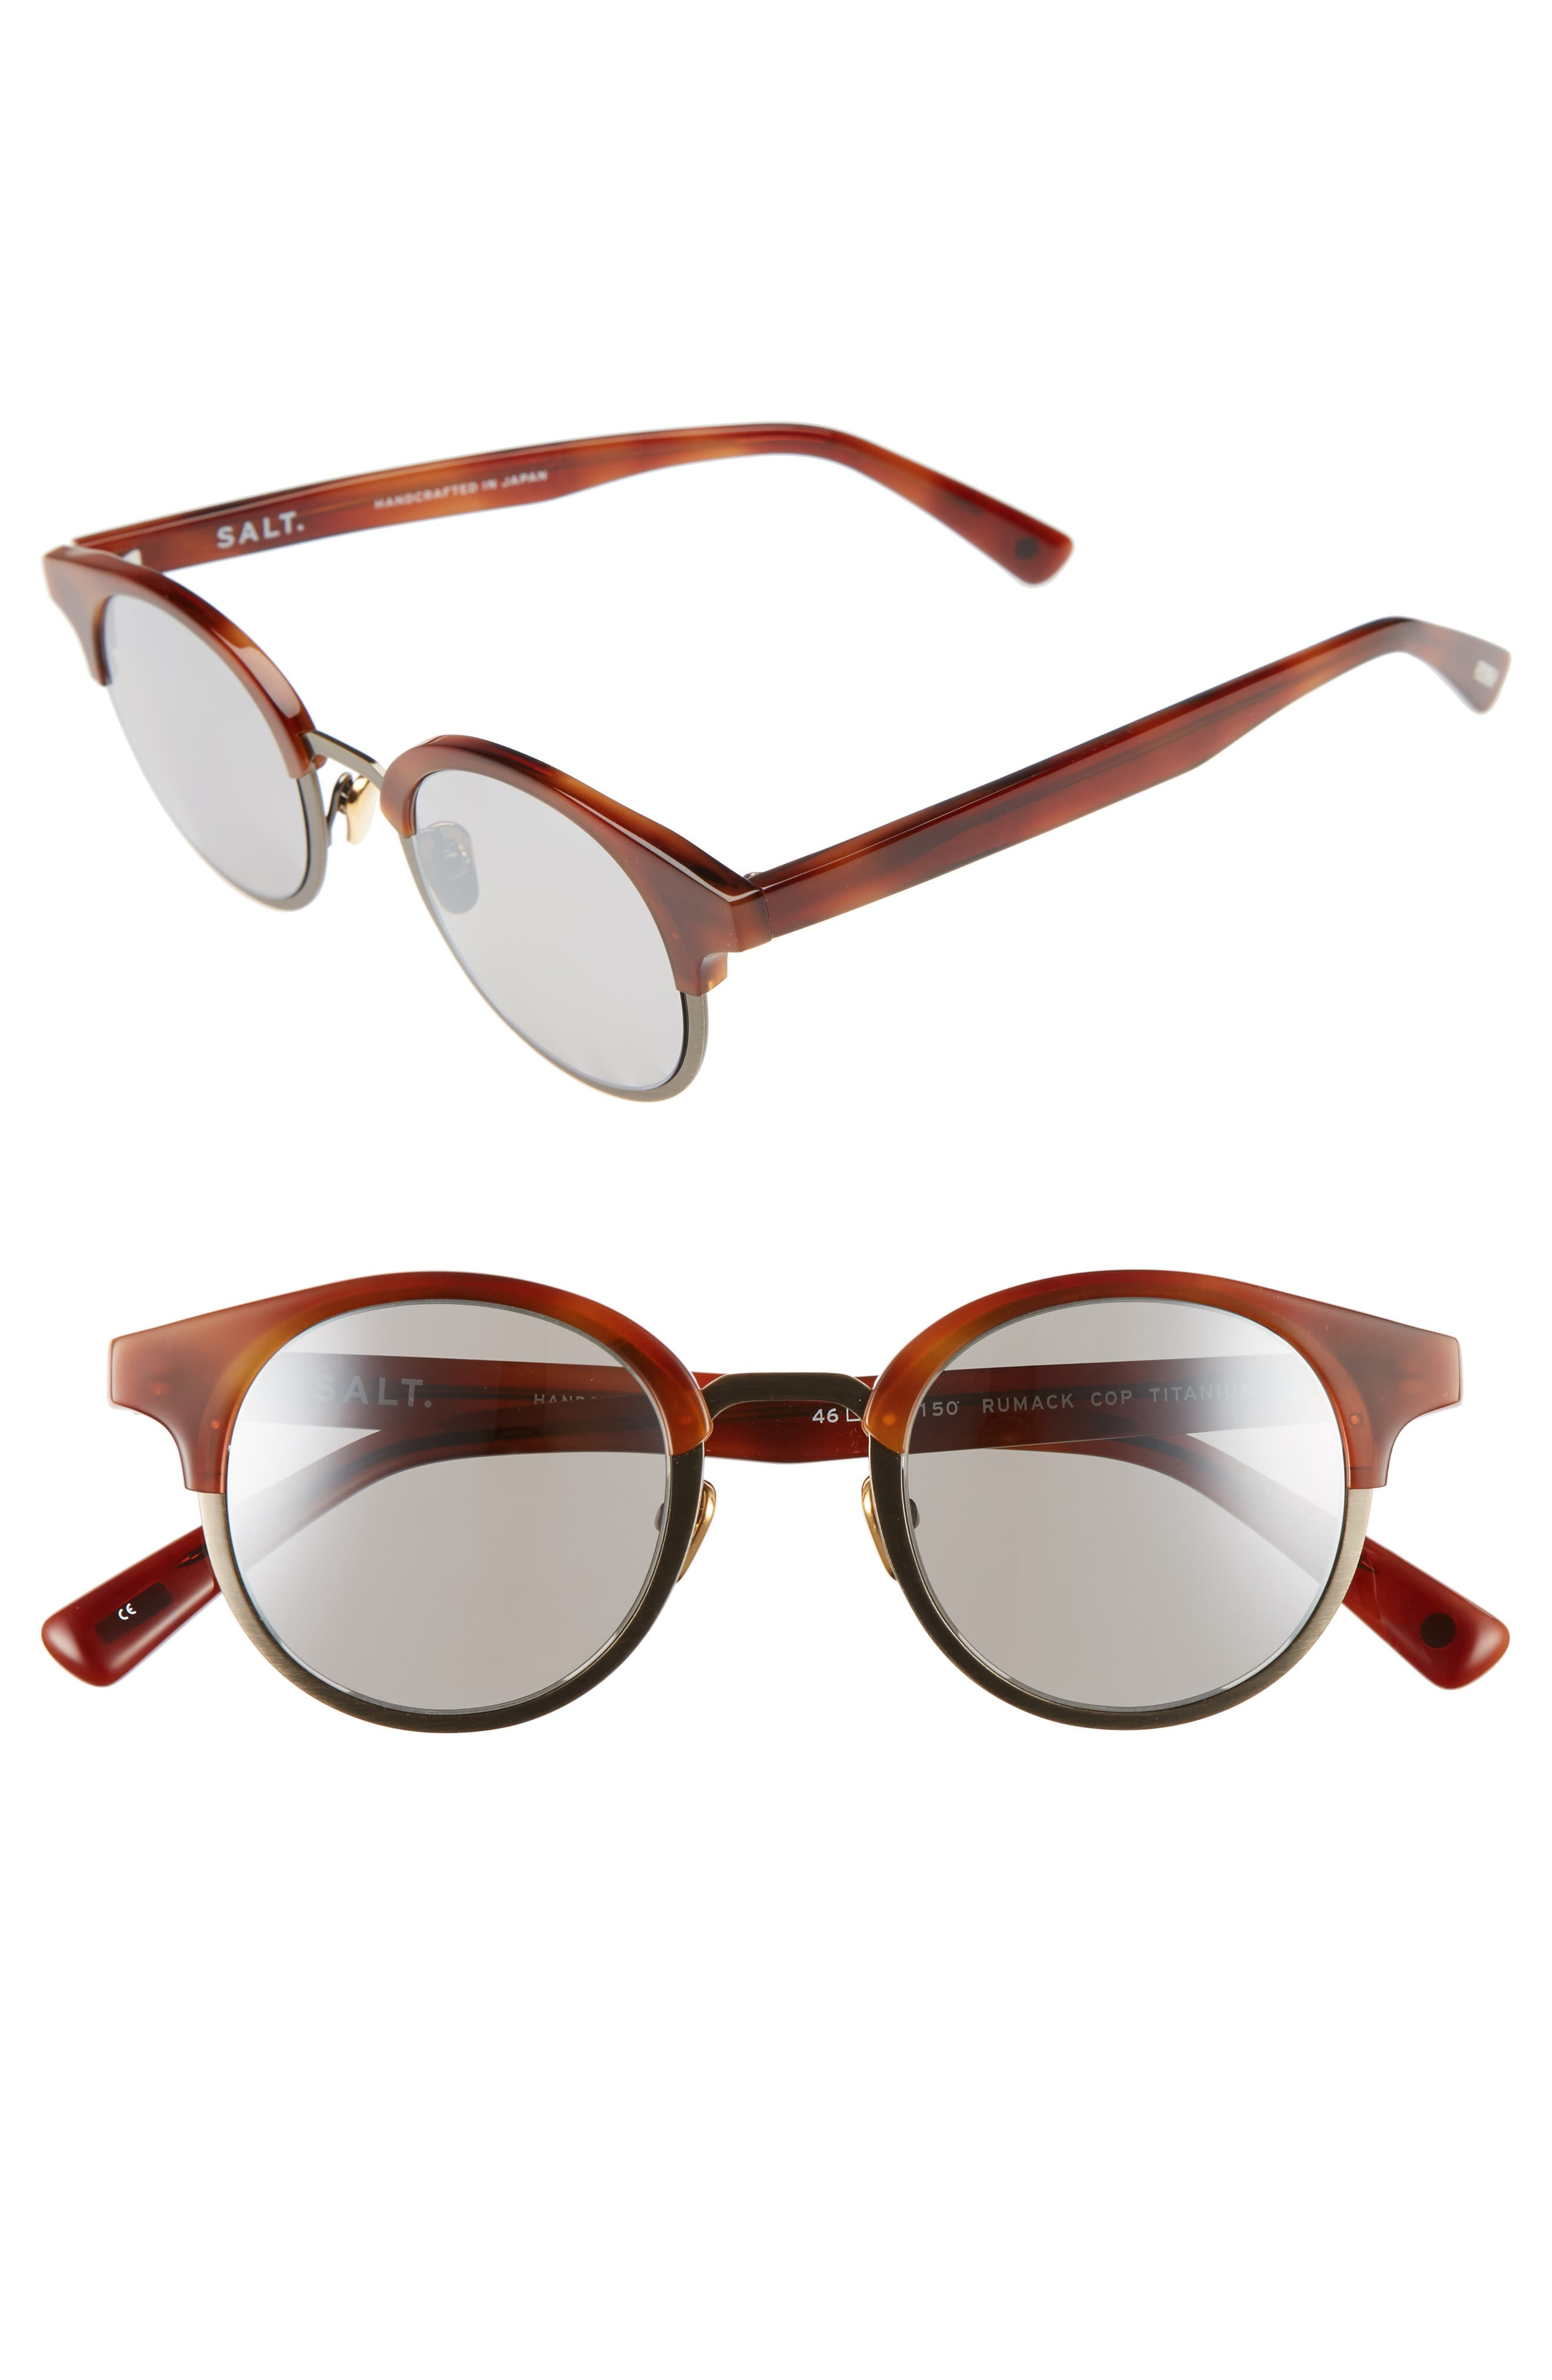 Rumack 46mm Polarized Sunglasses,                             Main thumbnail 1, color,                             Copper Tone/ Antique Gold